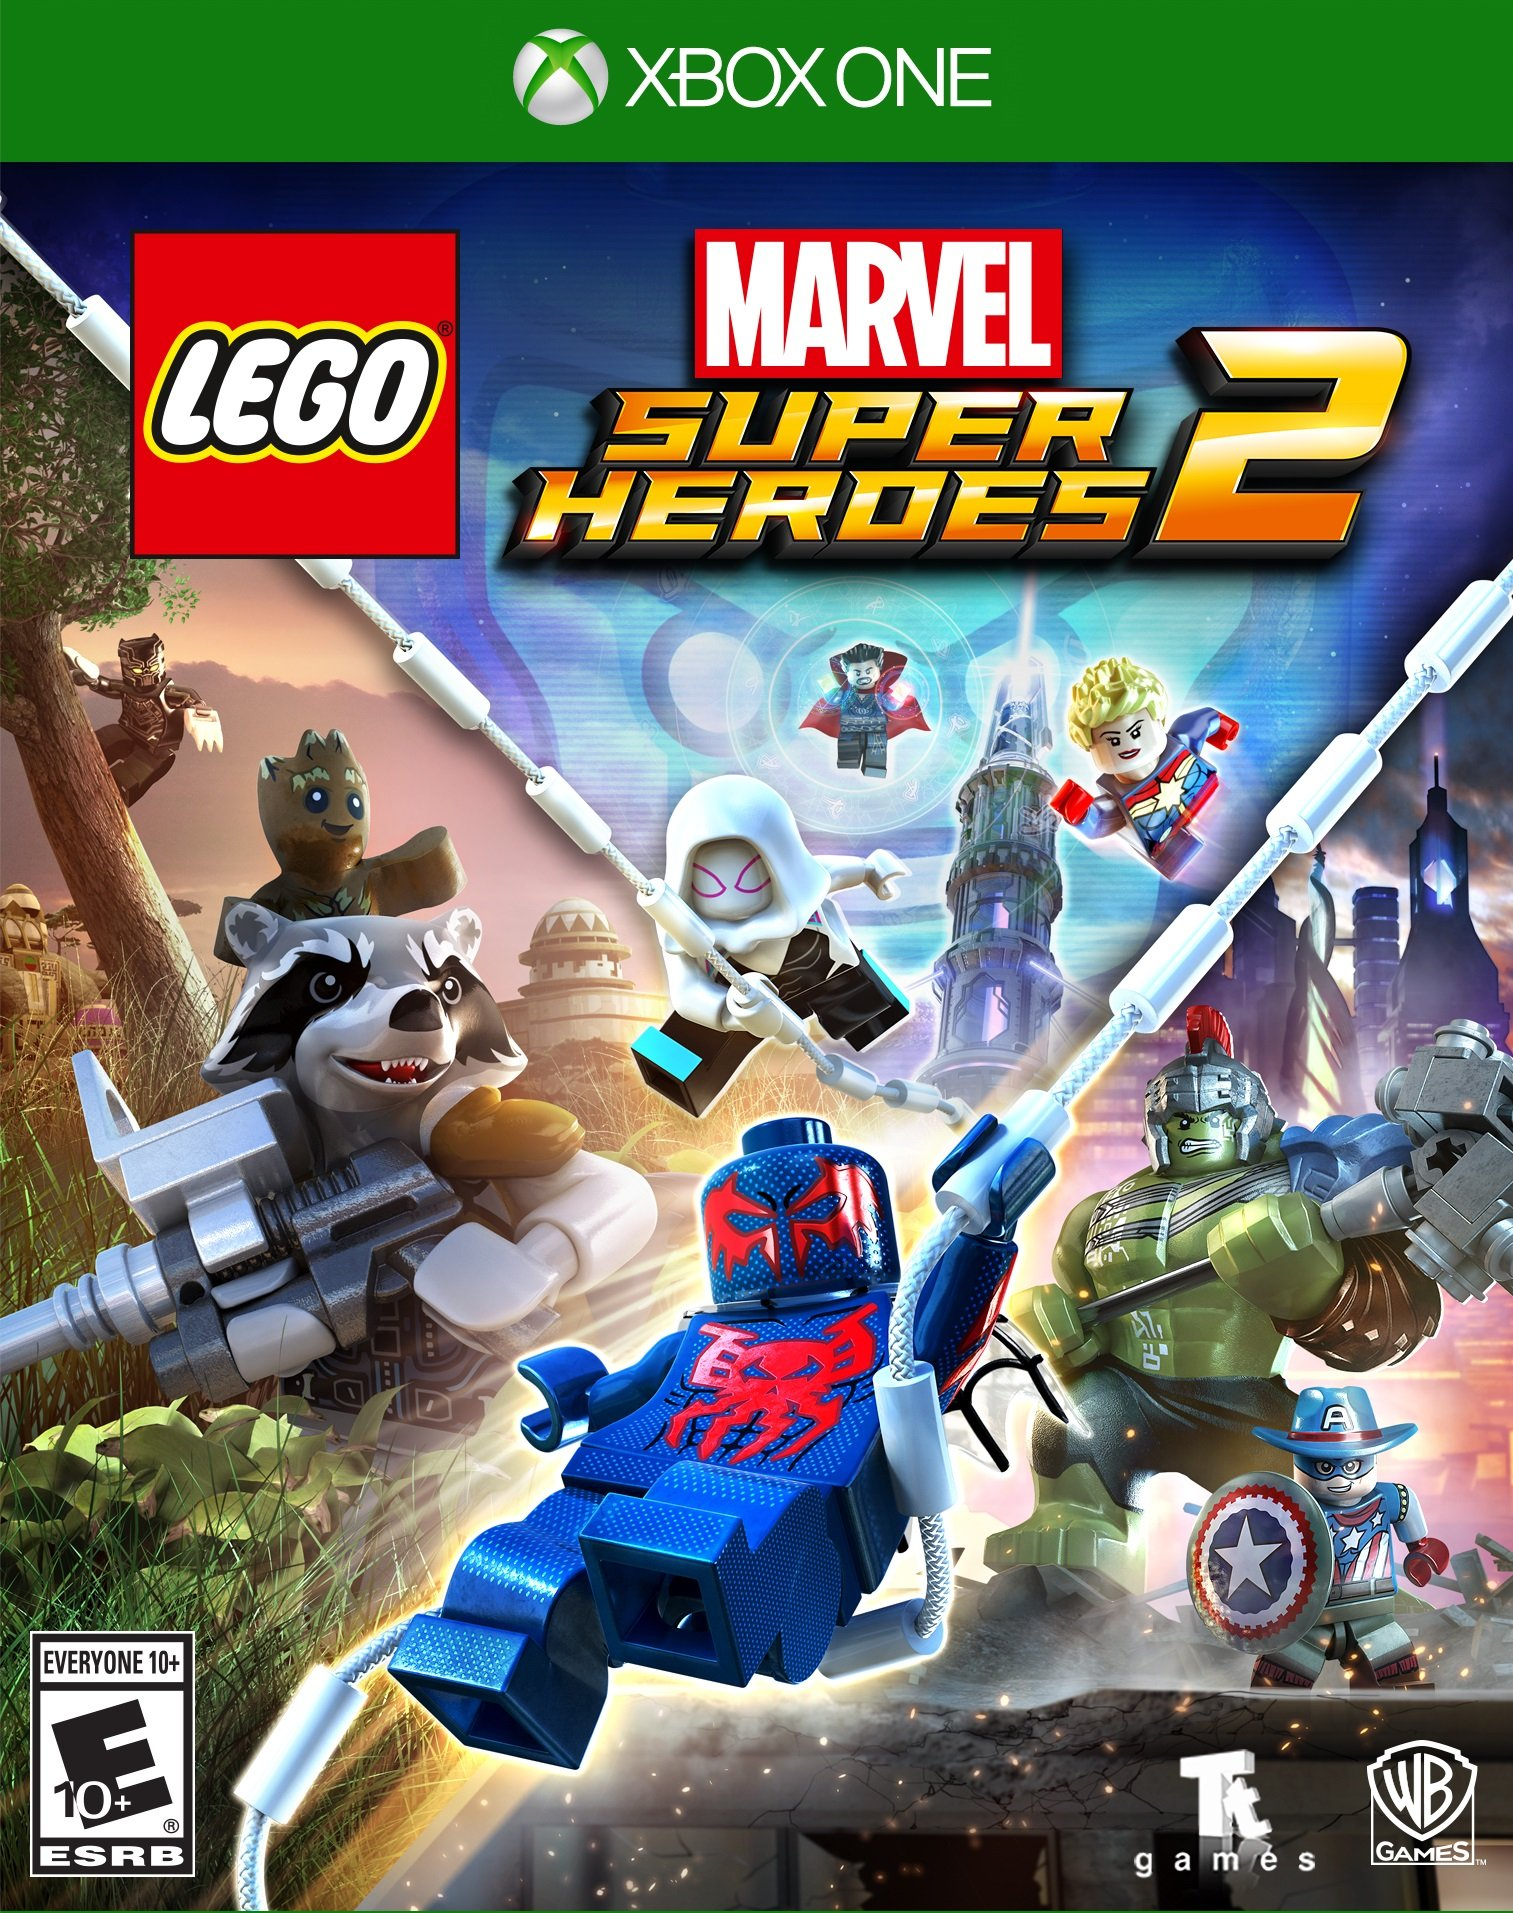 Mario Kart 8 Deluxe Release Date >> LEGO Marvel Superheroes 2 Release Date (Xbox One, PS4, Switch)